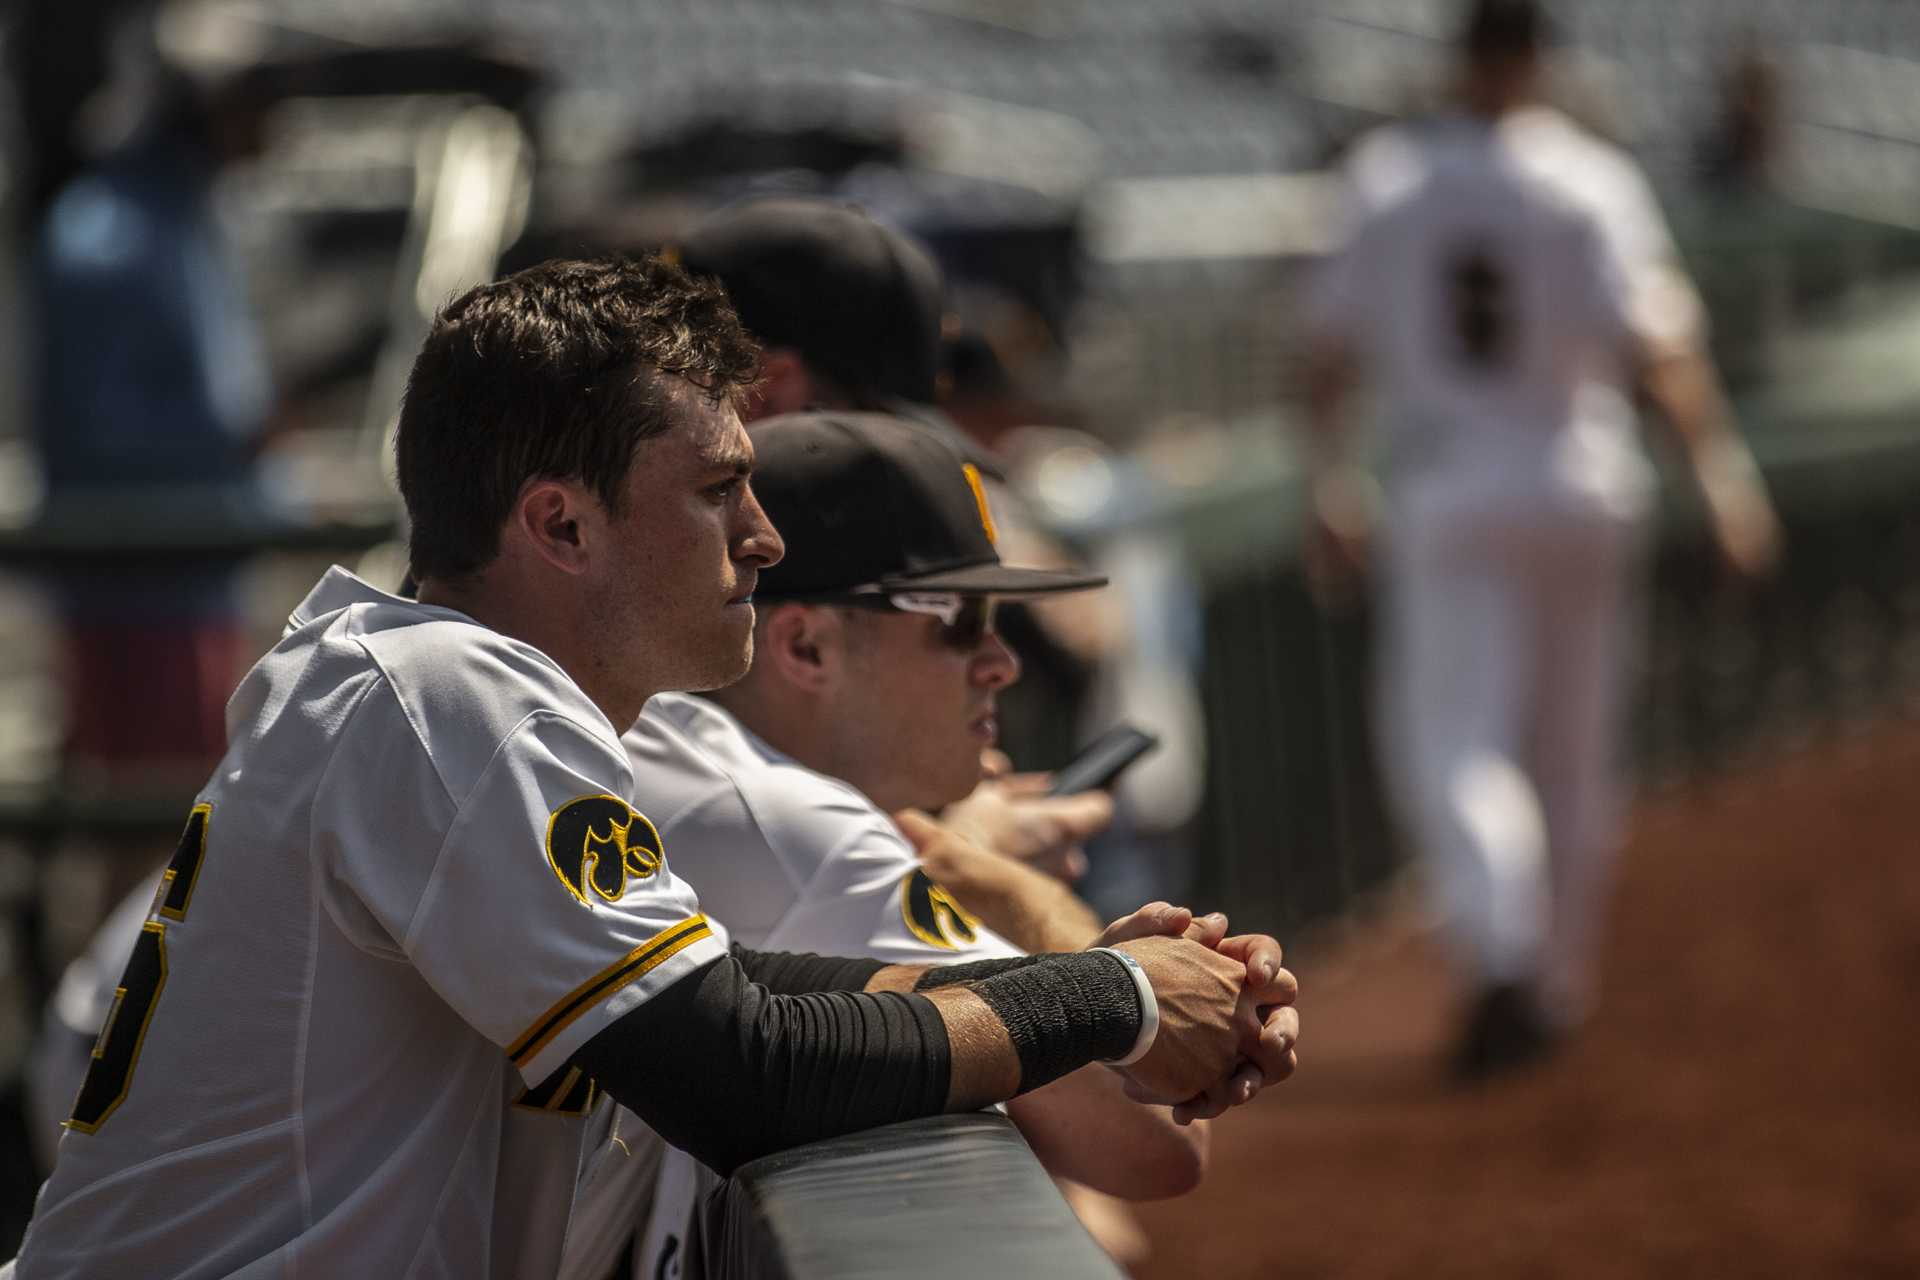 Iowa players lean on the dugout railing after Iowa's Big Ten tournament game against Ohio State on Thursday, May 24, 2018. The Buckeyes defeated the Hawkeyes 2-0. (Nick Rohlman/The Daily Iowan)